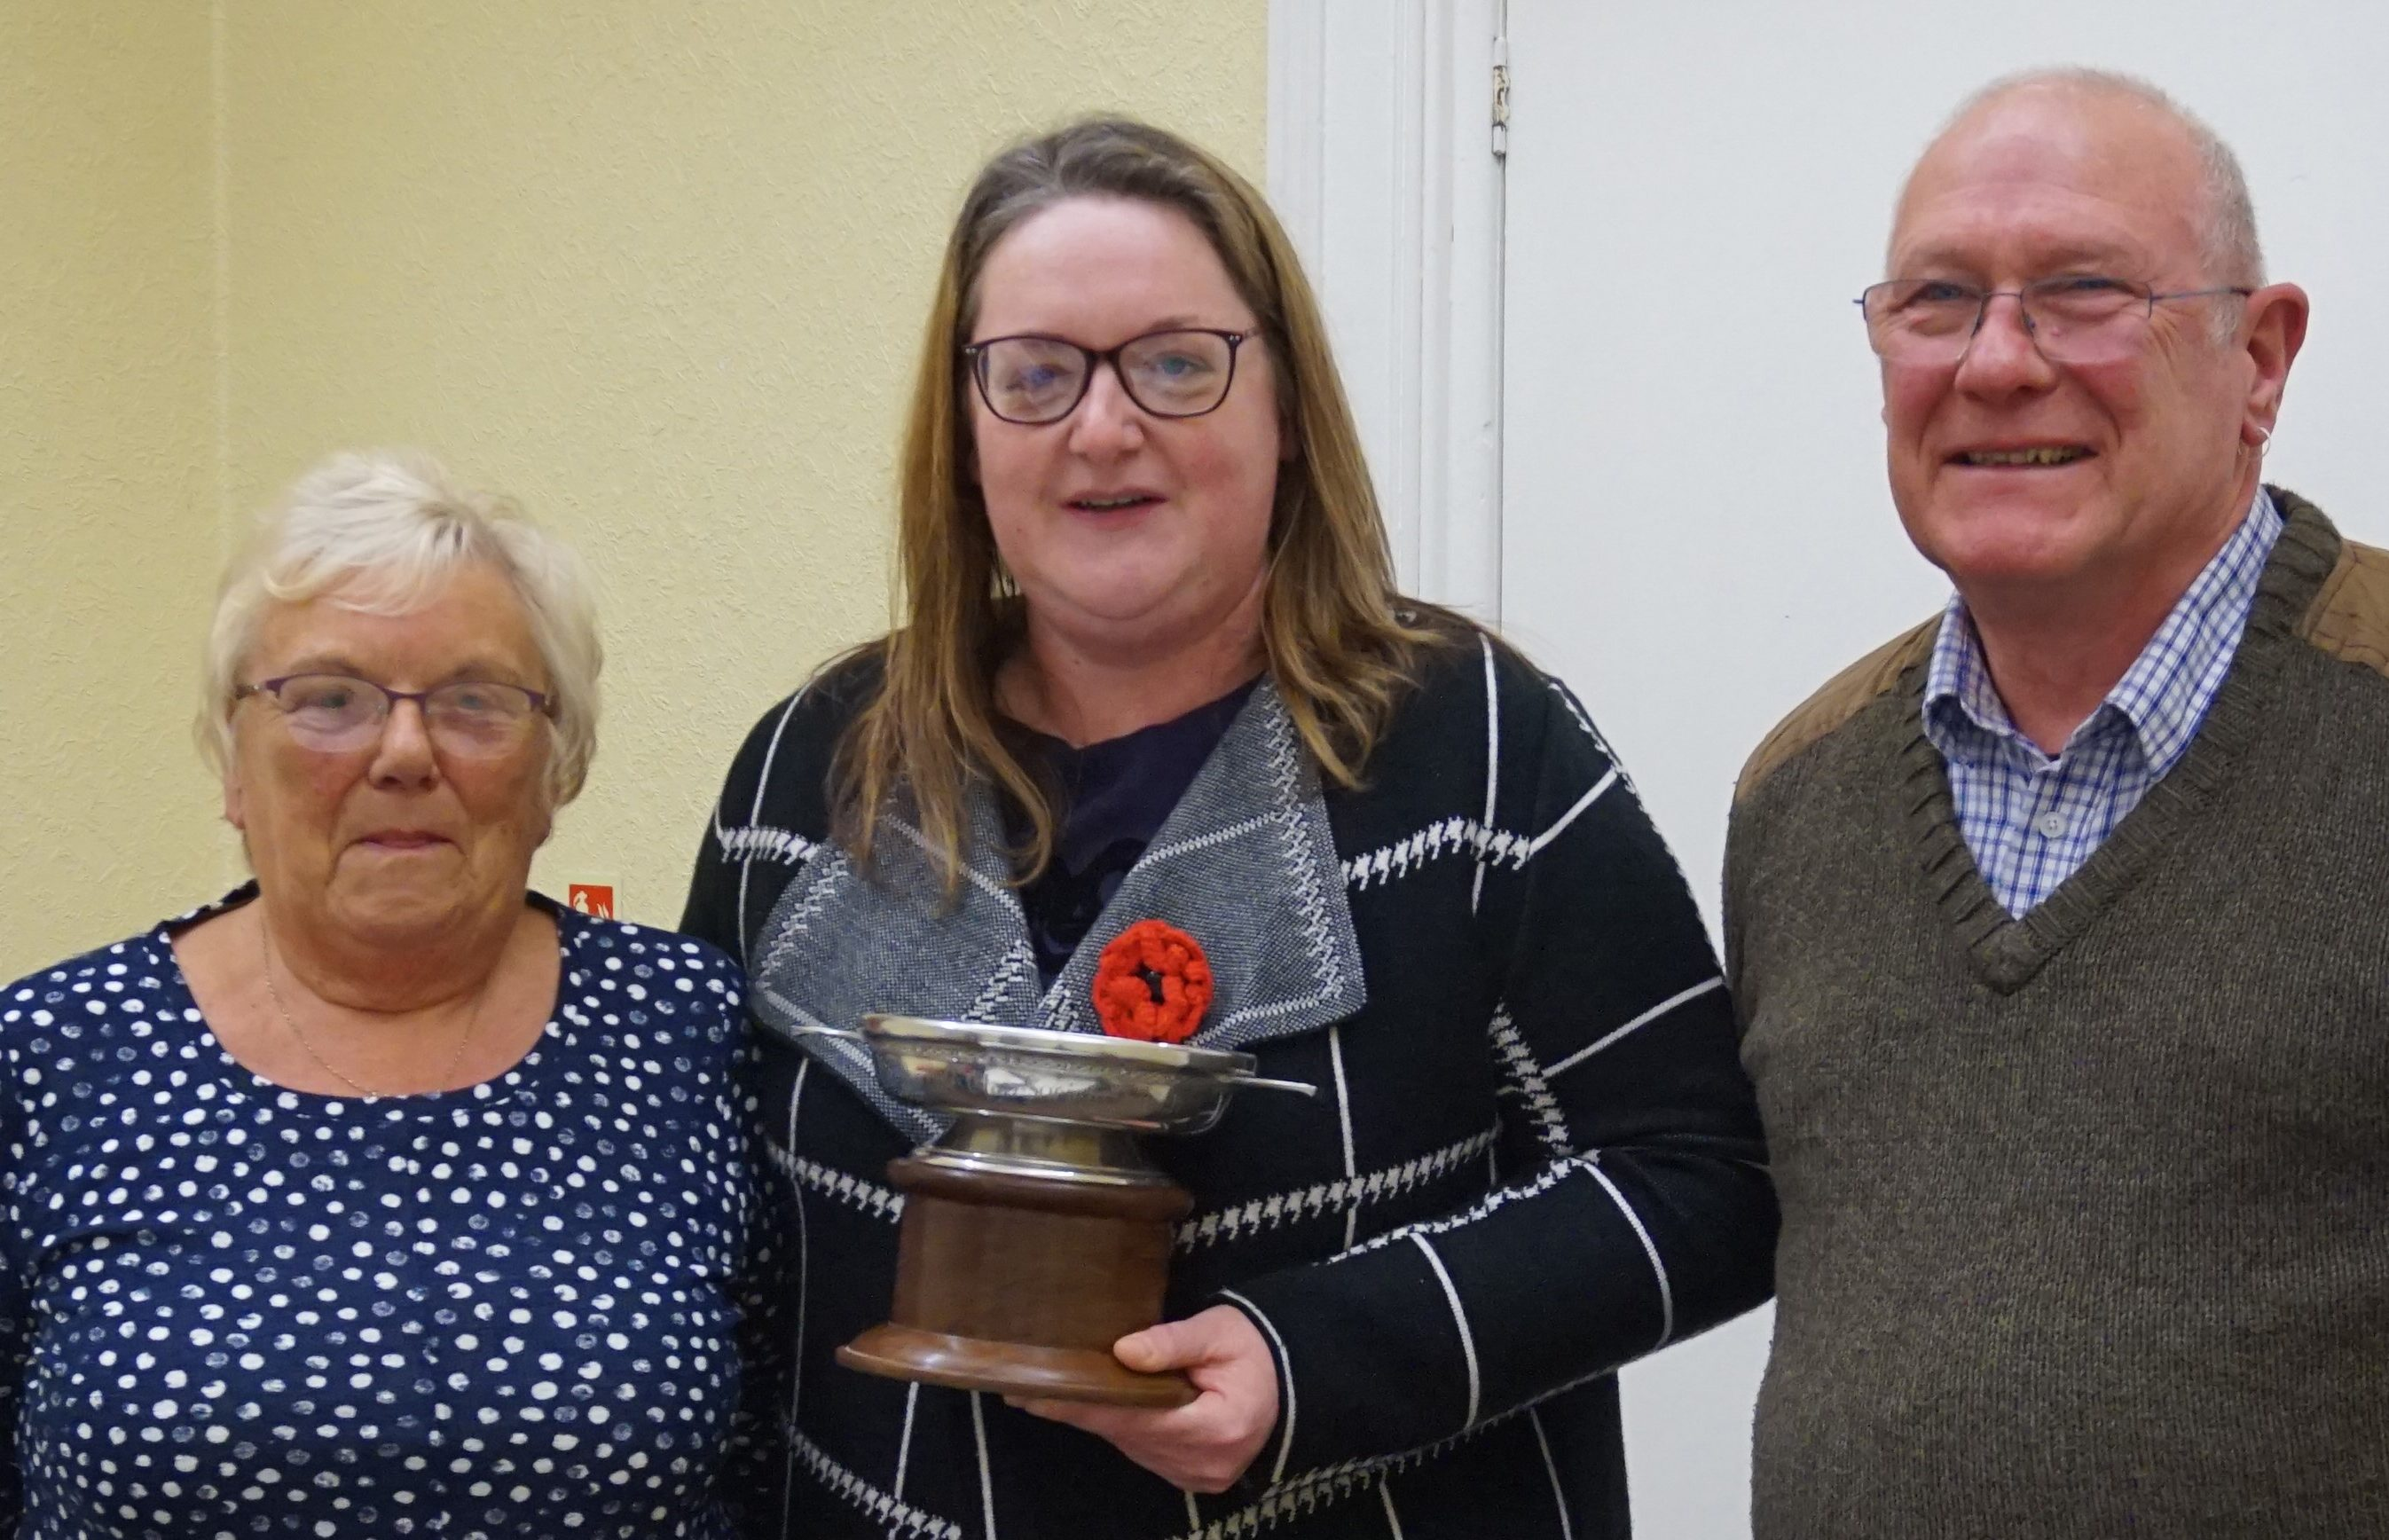 The Macduff Quaich 2019 being presented to Claire Nicholson by Banff and Macduff Community Council chairwoman Kathleen Mustard and community councillor Richard Menard